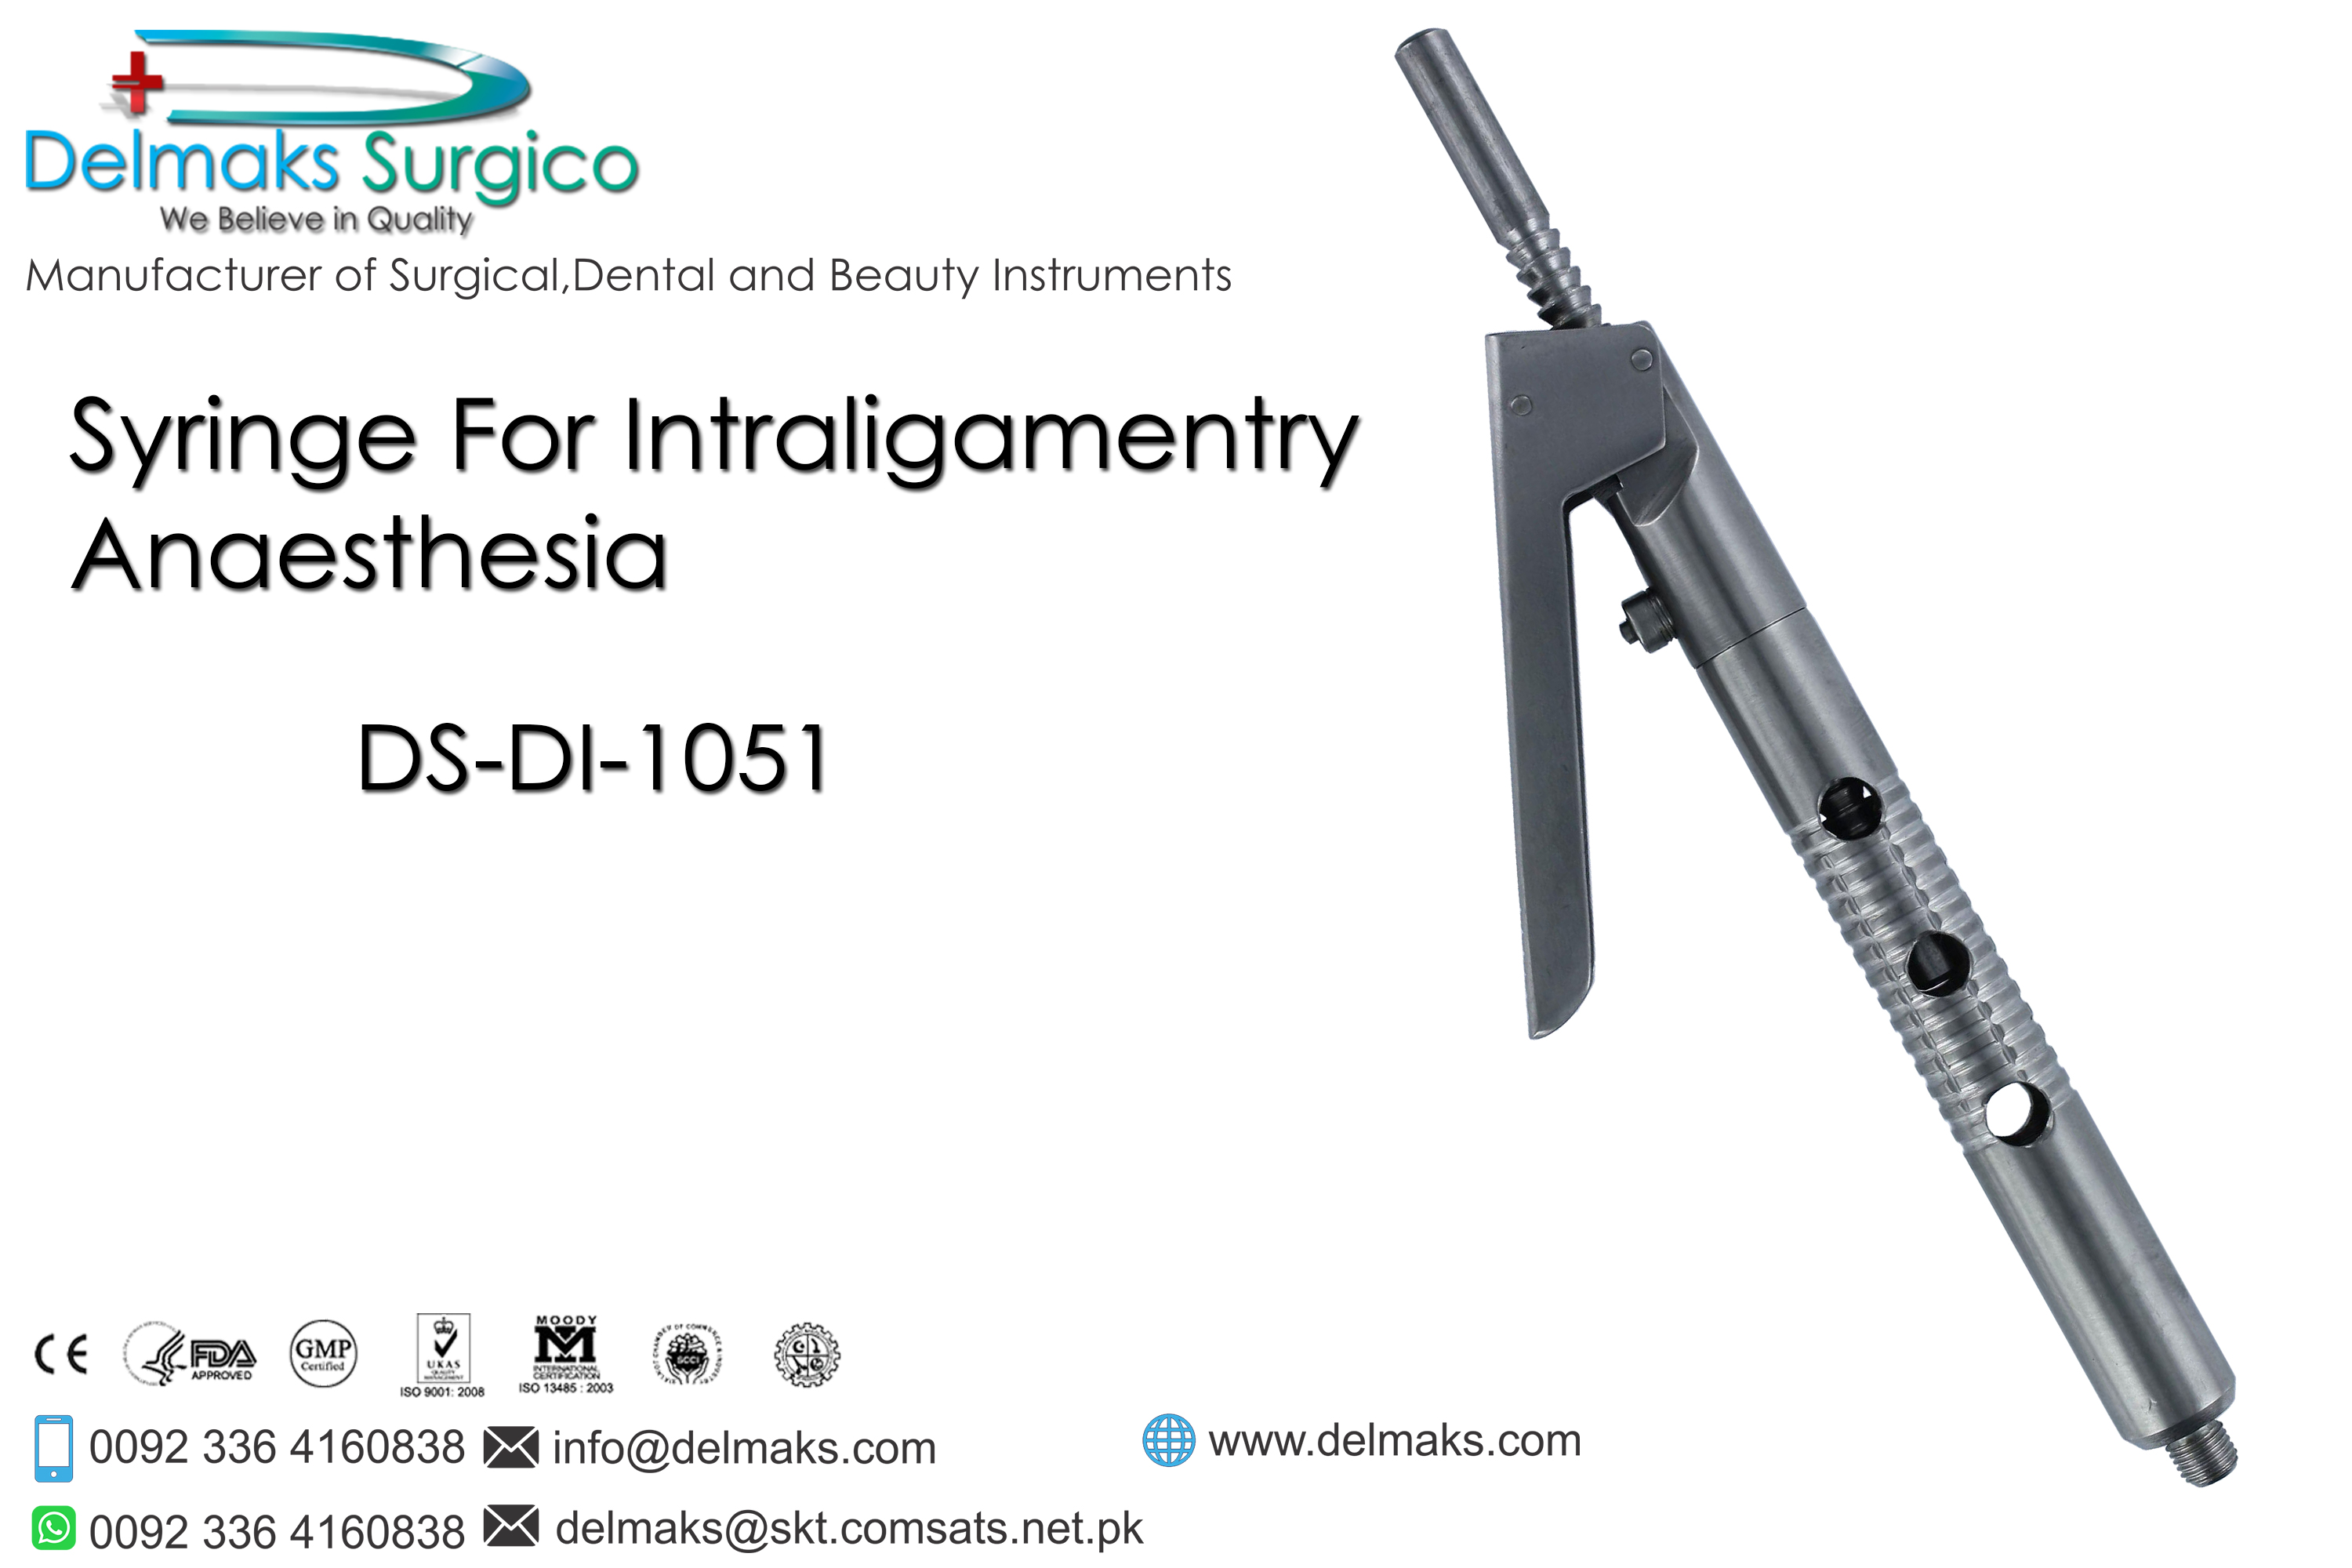 Syringe For Intraligamentry Anaesthesia-Dental Syringes-Dental Instruments-Delmaks Surgico